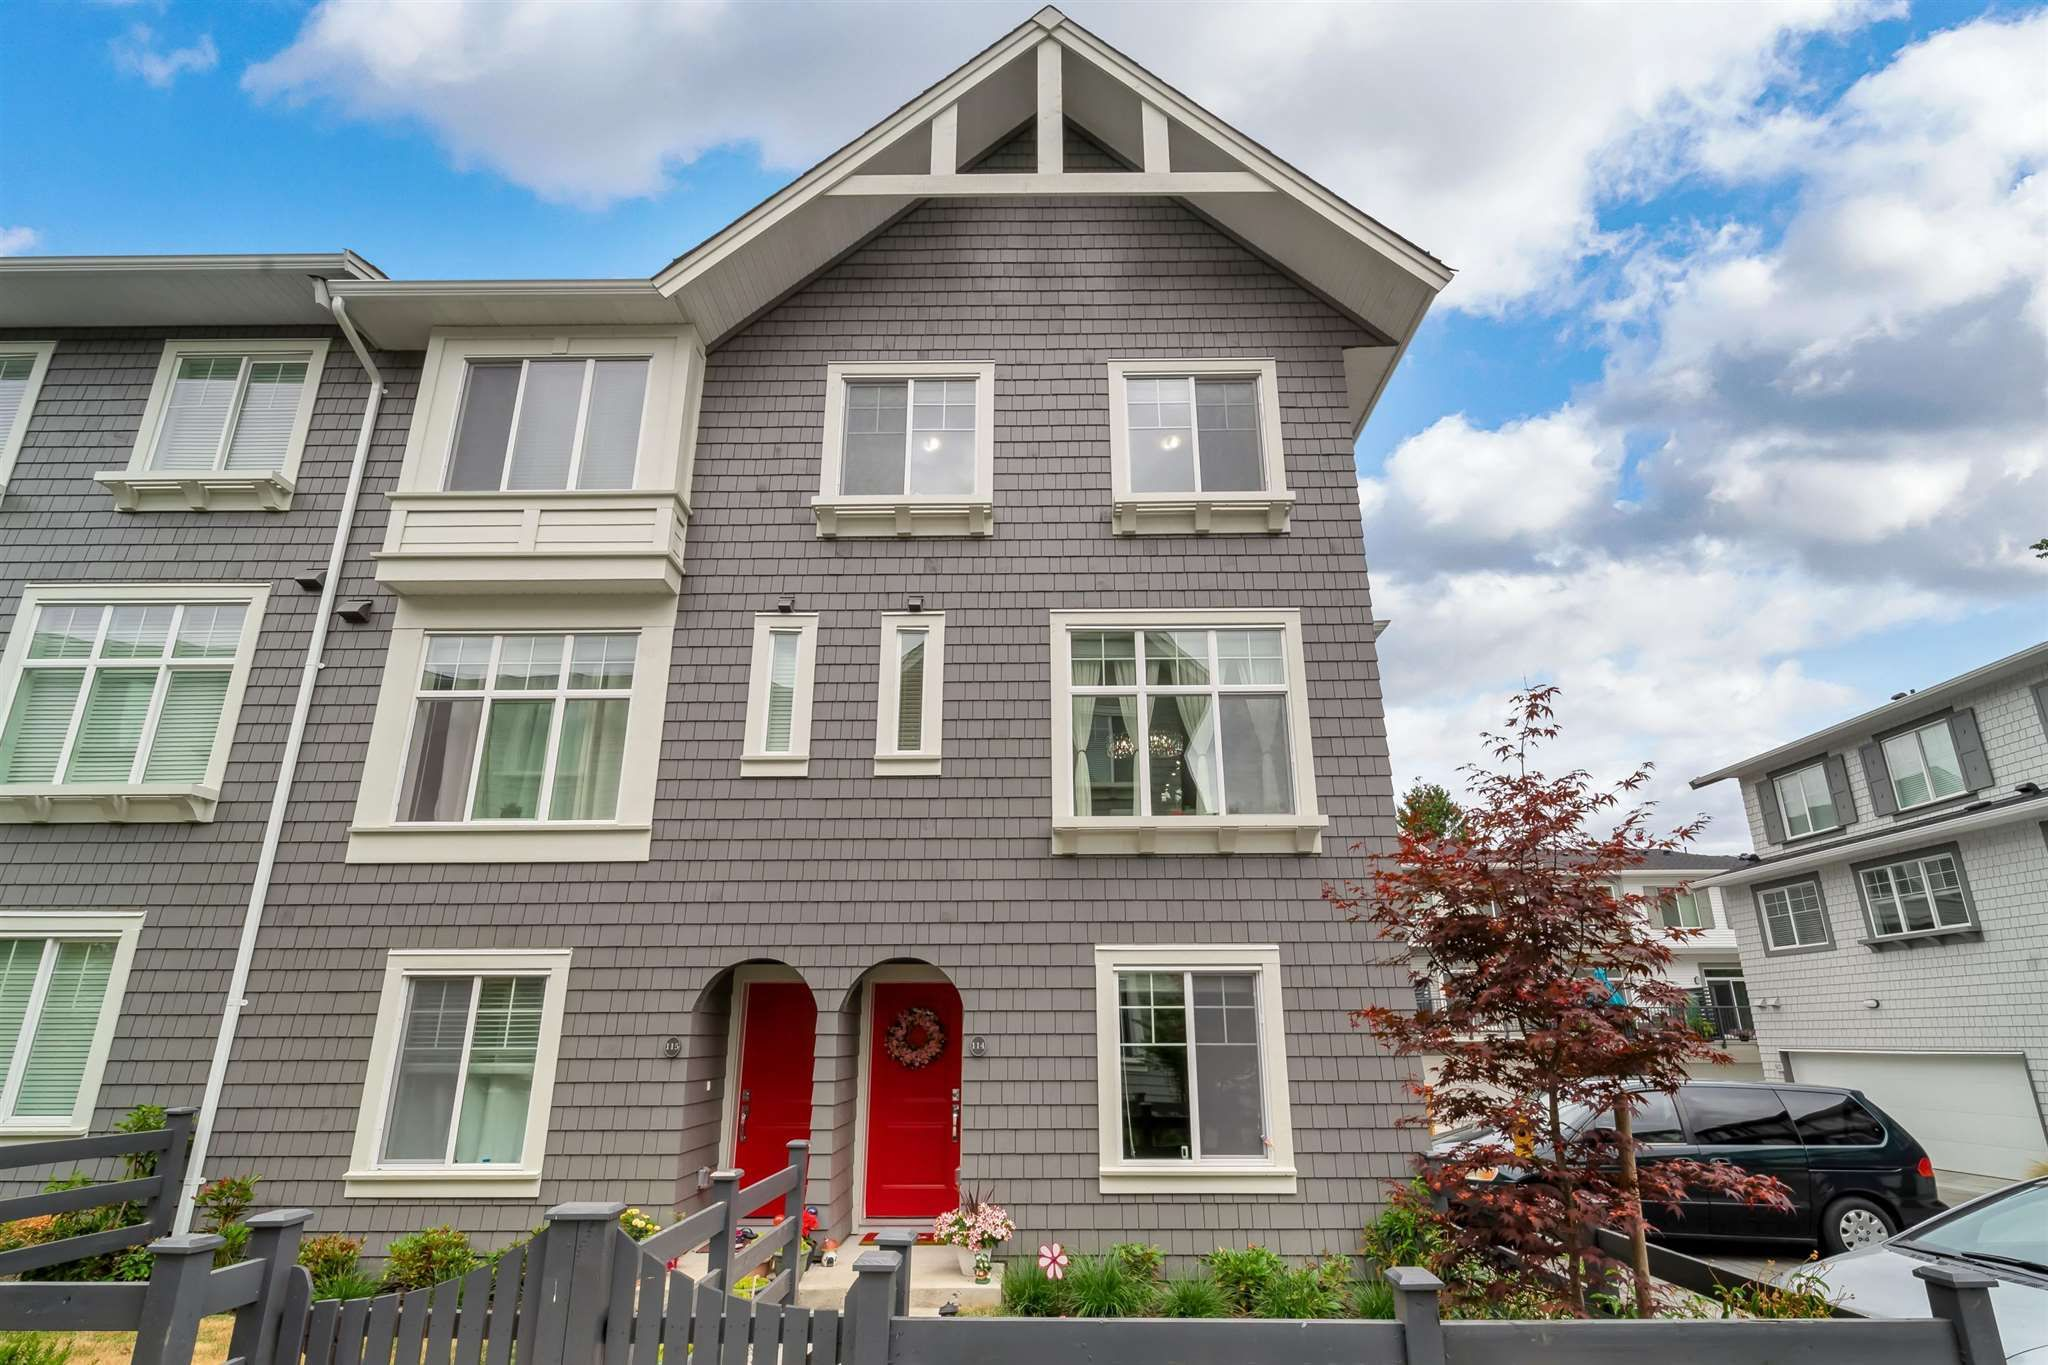 Main Photo: 114 8168 136A Street in Surrey: Bear Creek Green Timbers Townhouse for sale : MLS®# R2603701